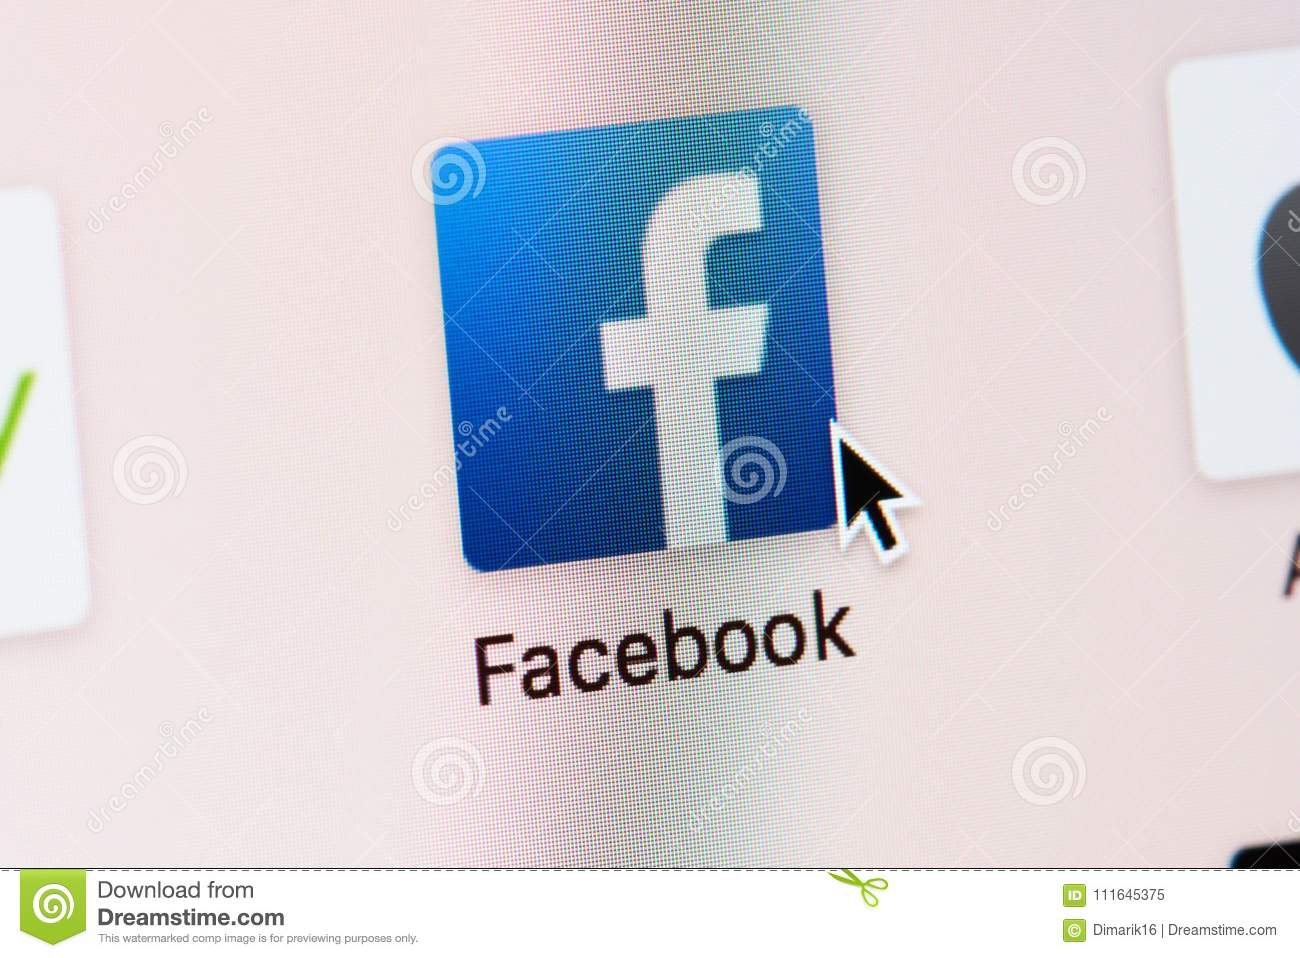 Opening Facebook web page